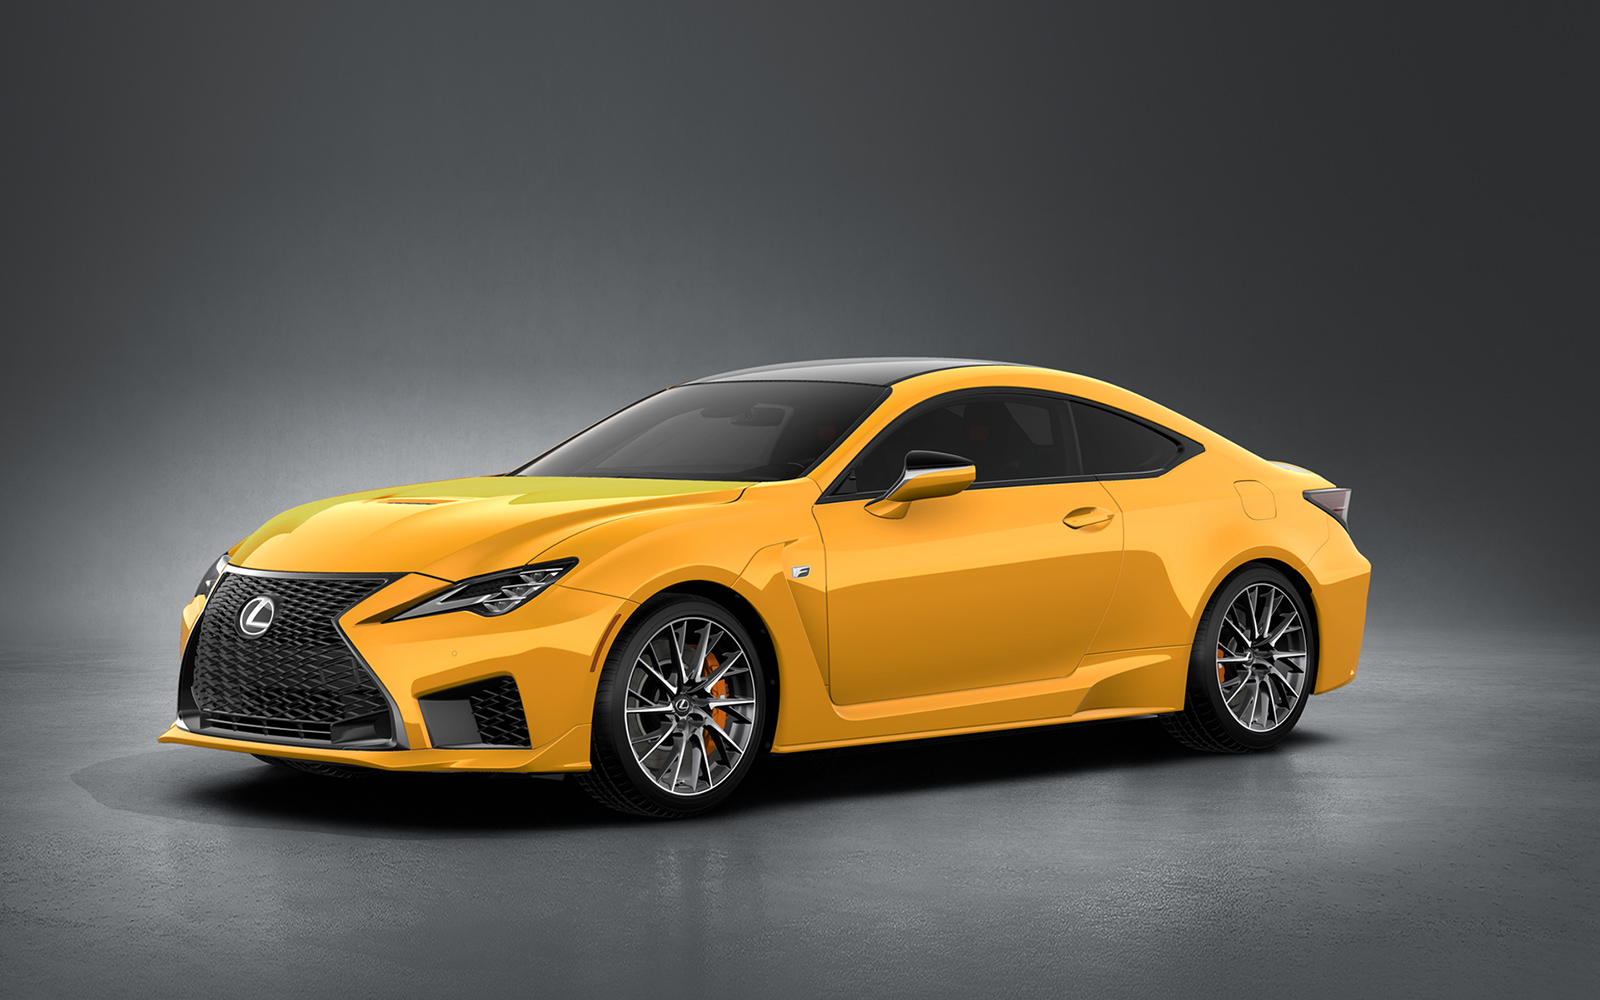 Lexus 2020 Rcf Performance Flare Yellow Front L